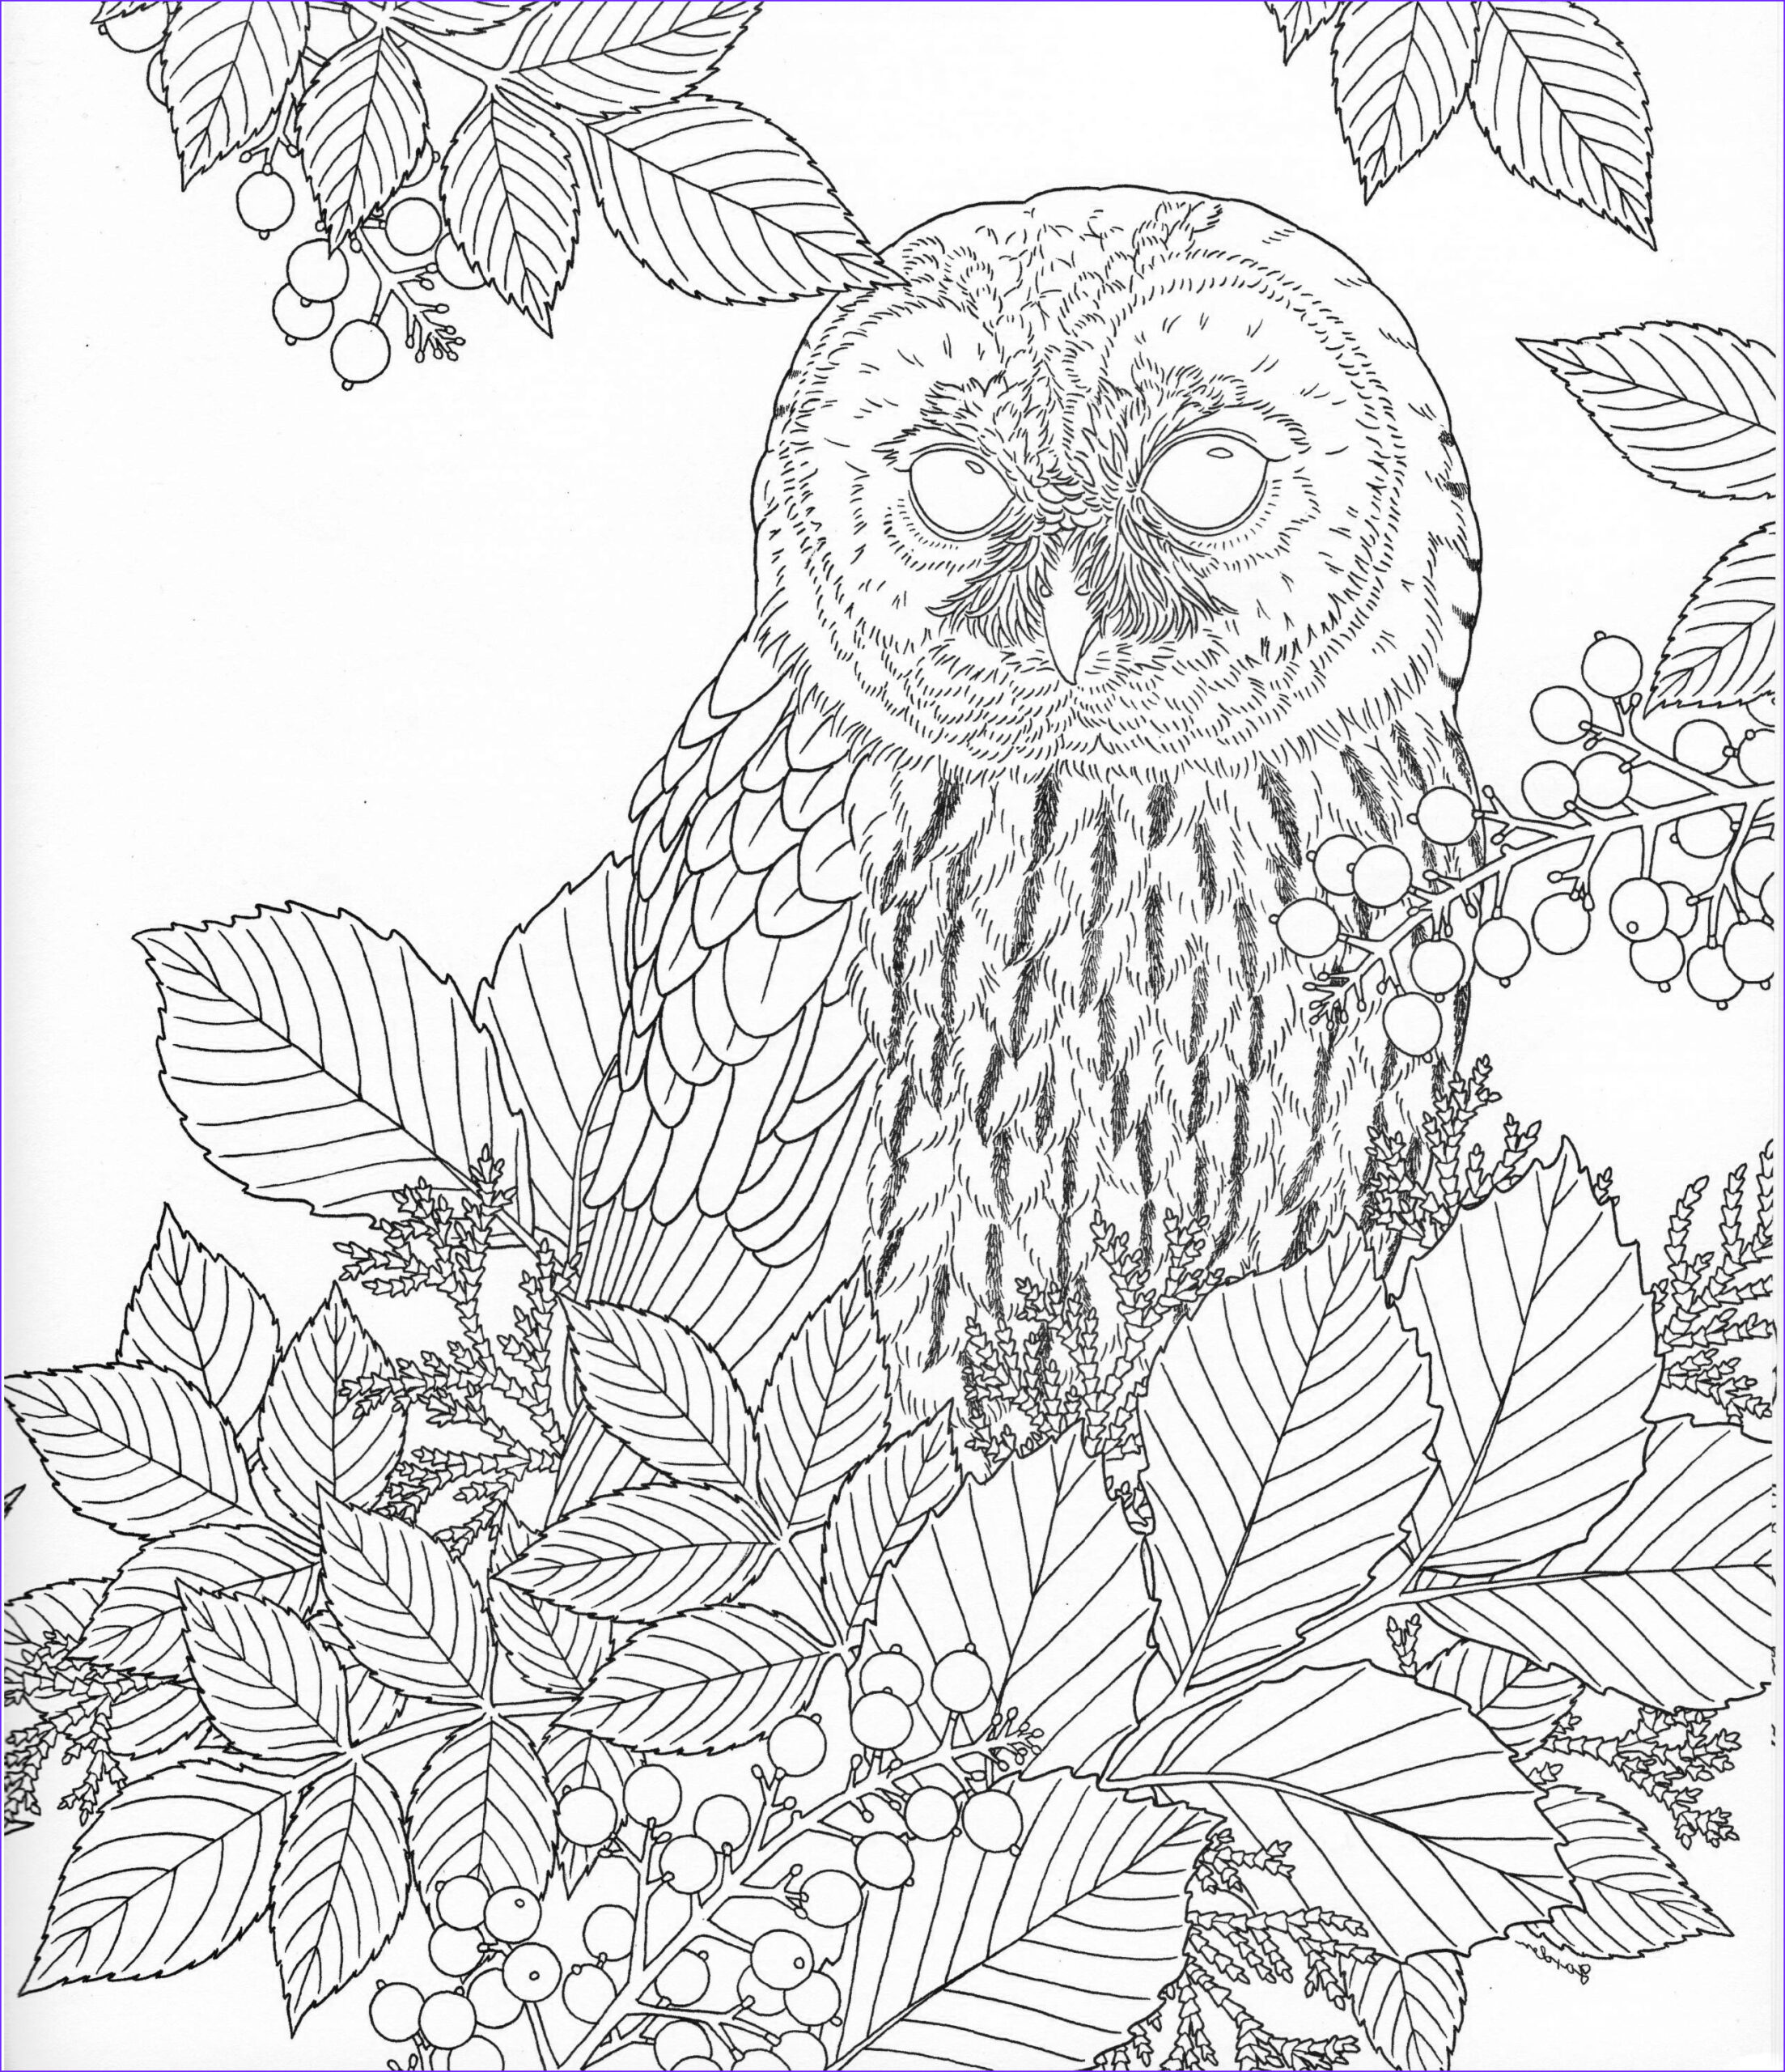 Nature Coloring Book Unique Image Harmony Nature Adult Coloring Book Pg 15